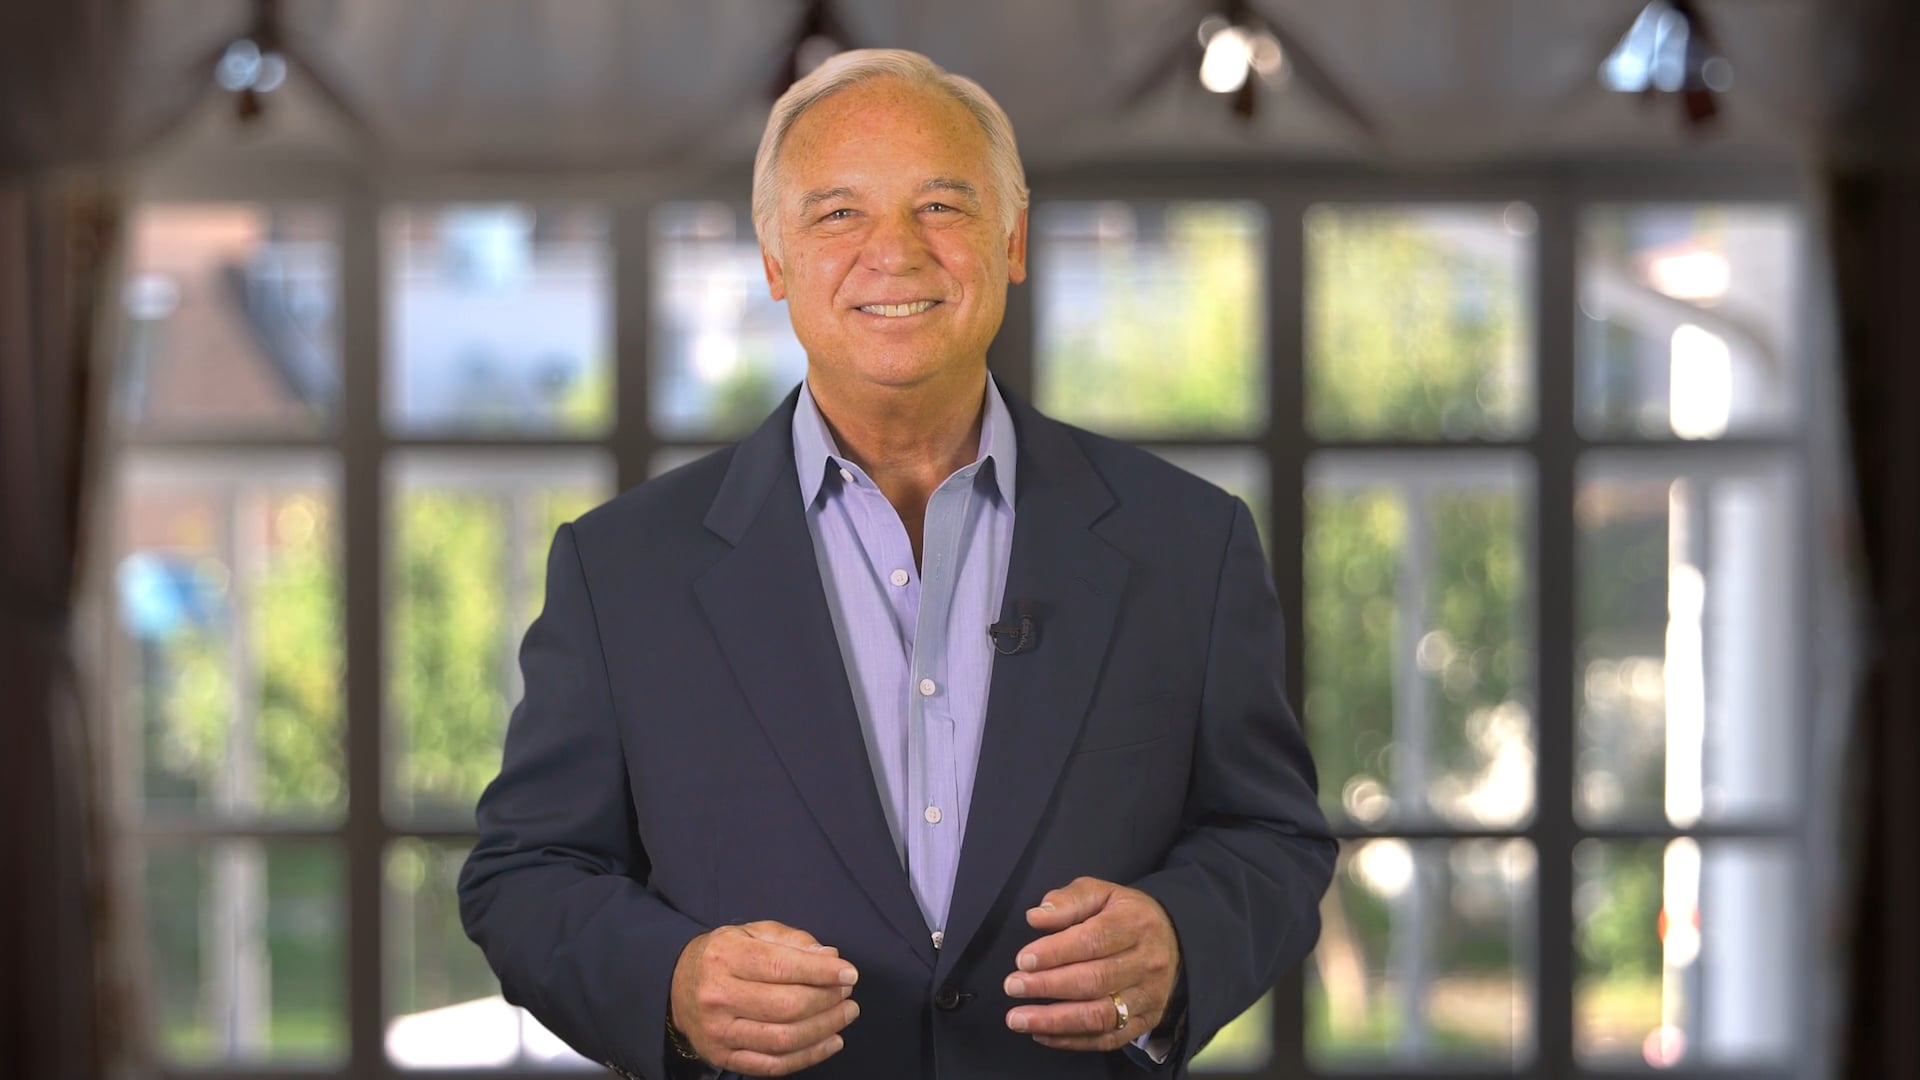 Jack Canfield's Video Message for Inner Power Now